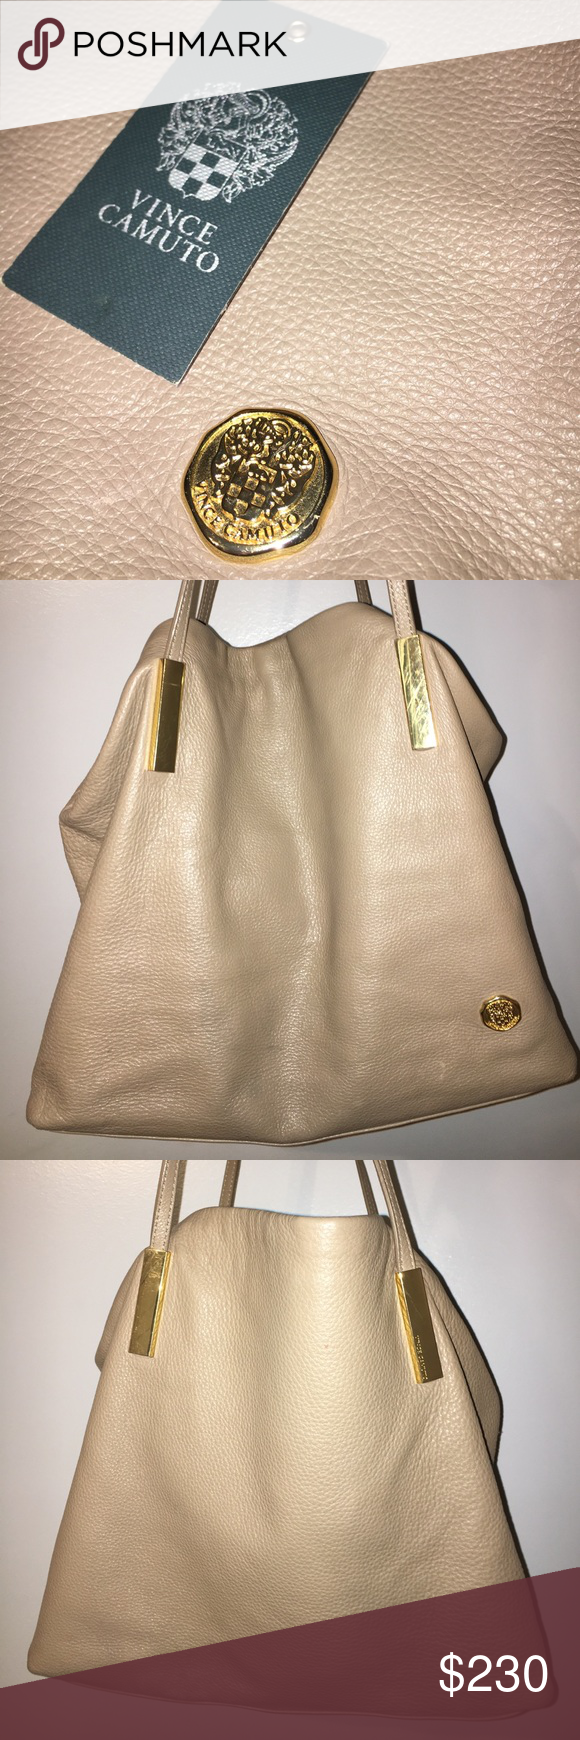 312a7bba9714 Authentic Vince Camuto Tote Bag Style VC-Kent-To, Group Kent Tote ...